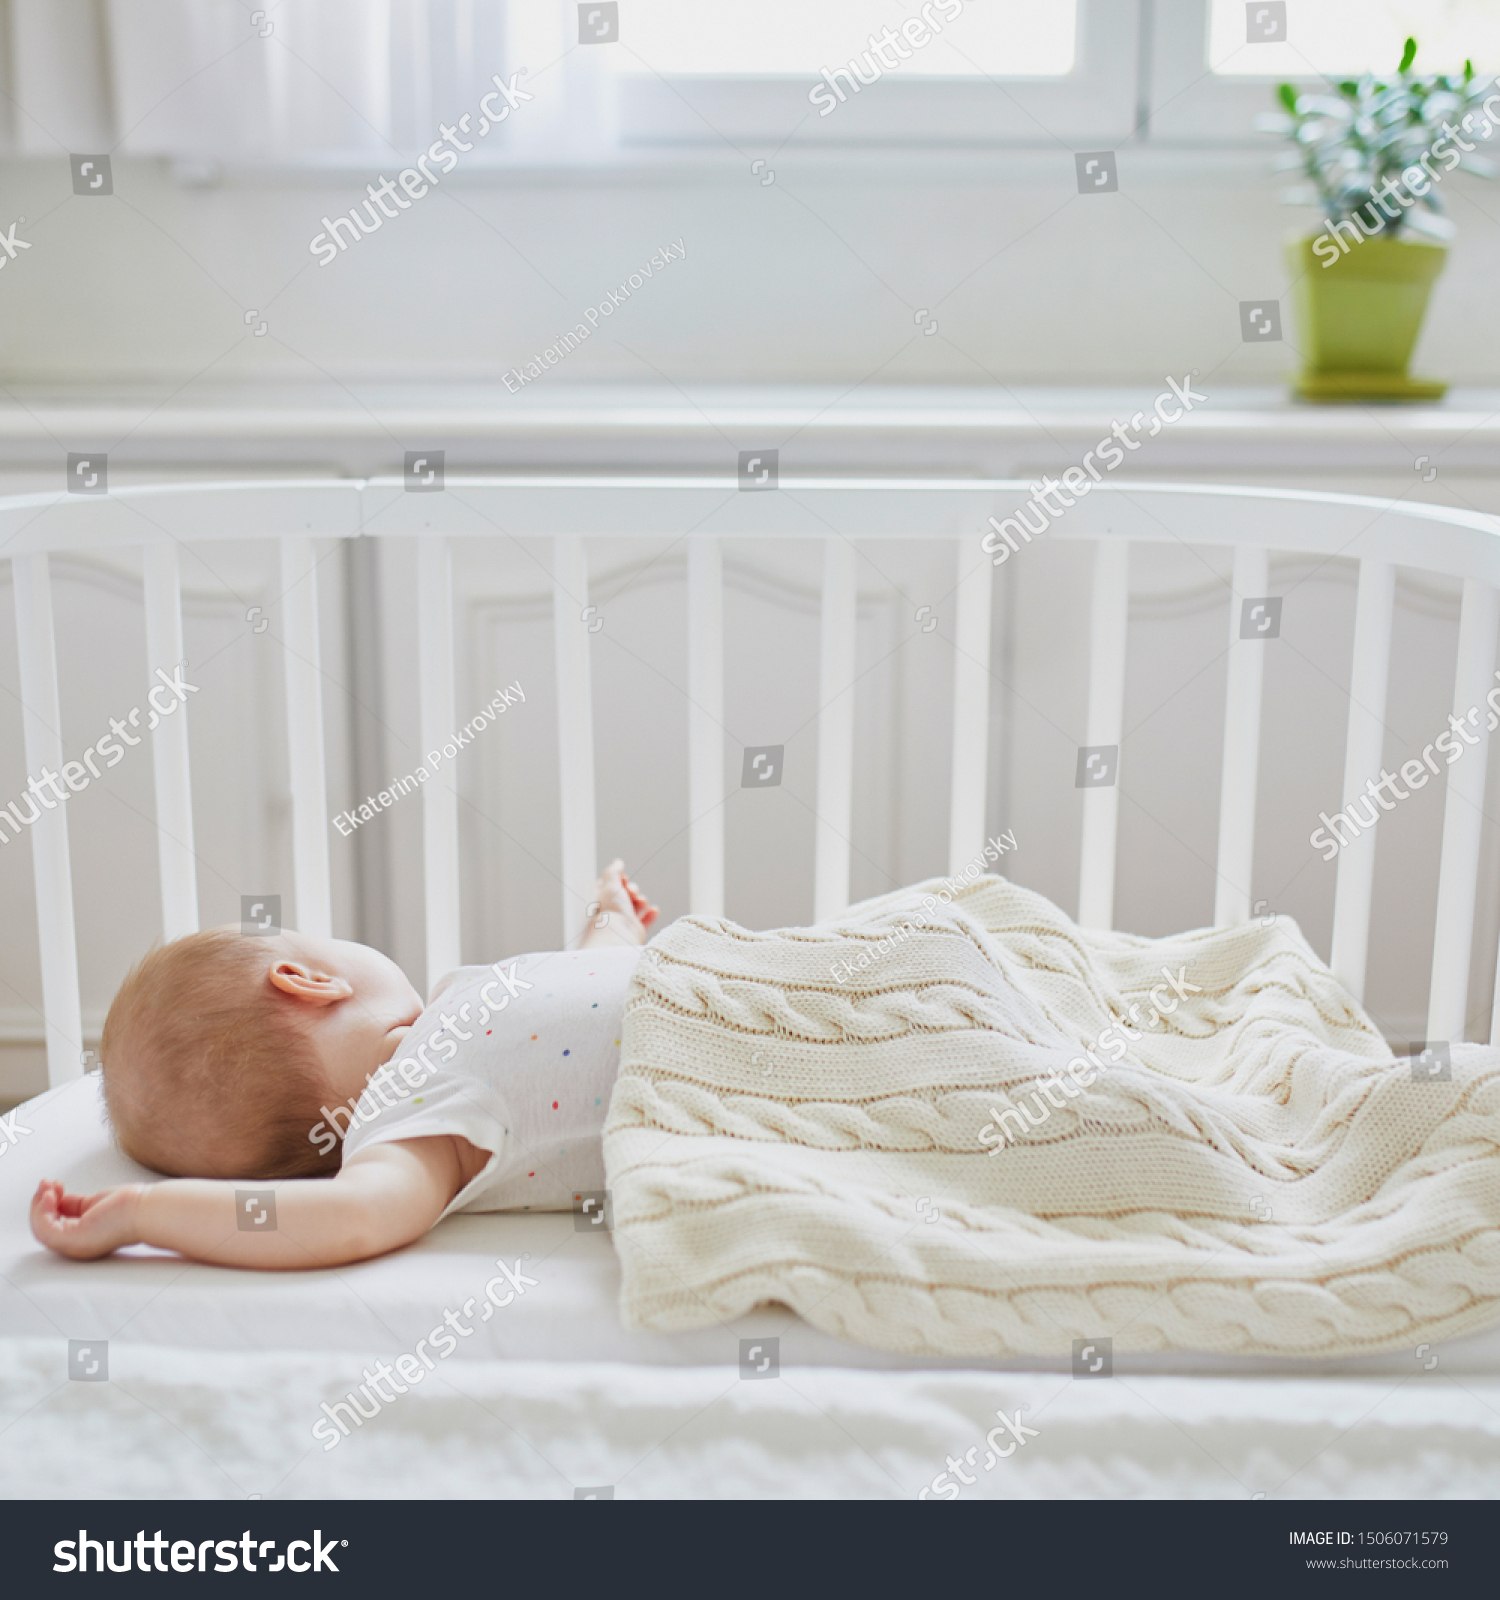 Baby Cots That Attach To Beds Adorable Baby Girl Sleeping Cosleeper Crib Stock Photo Edit